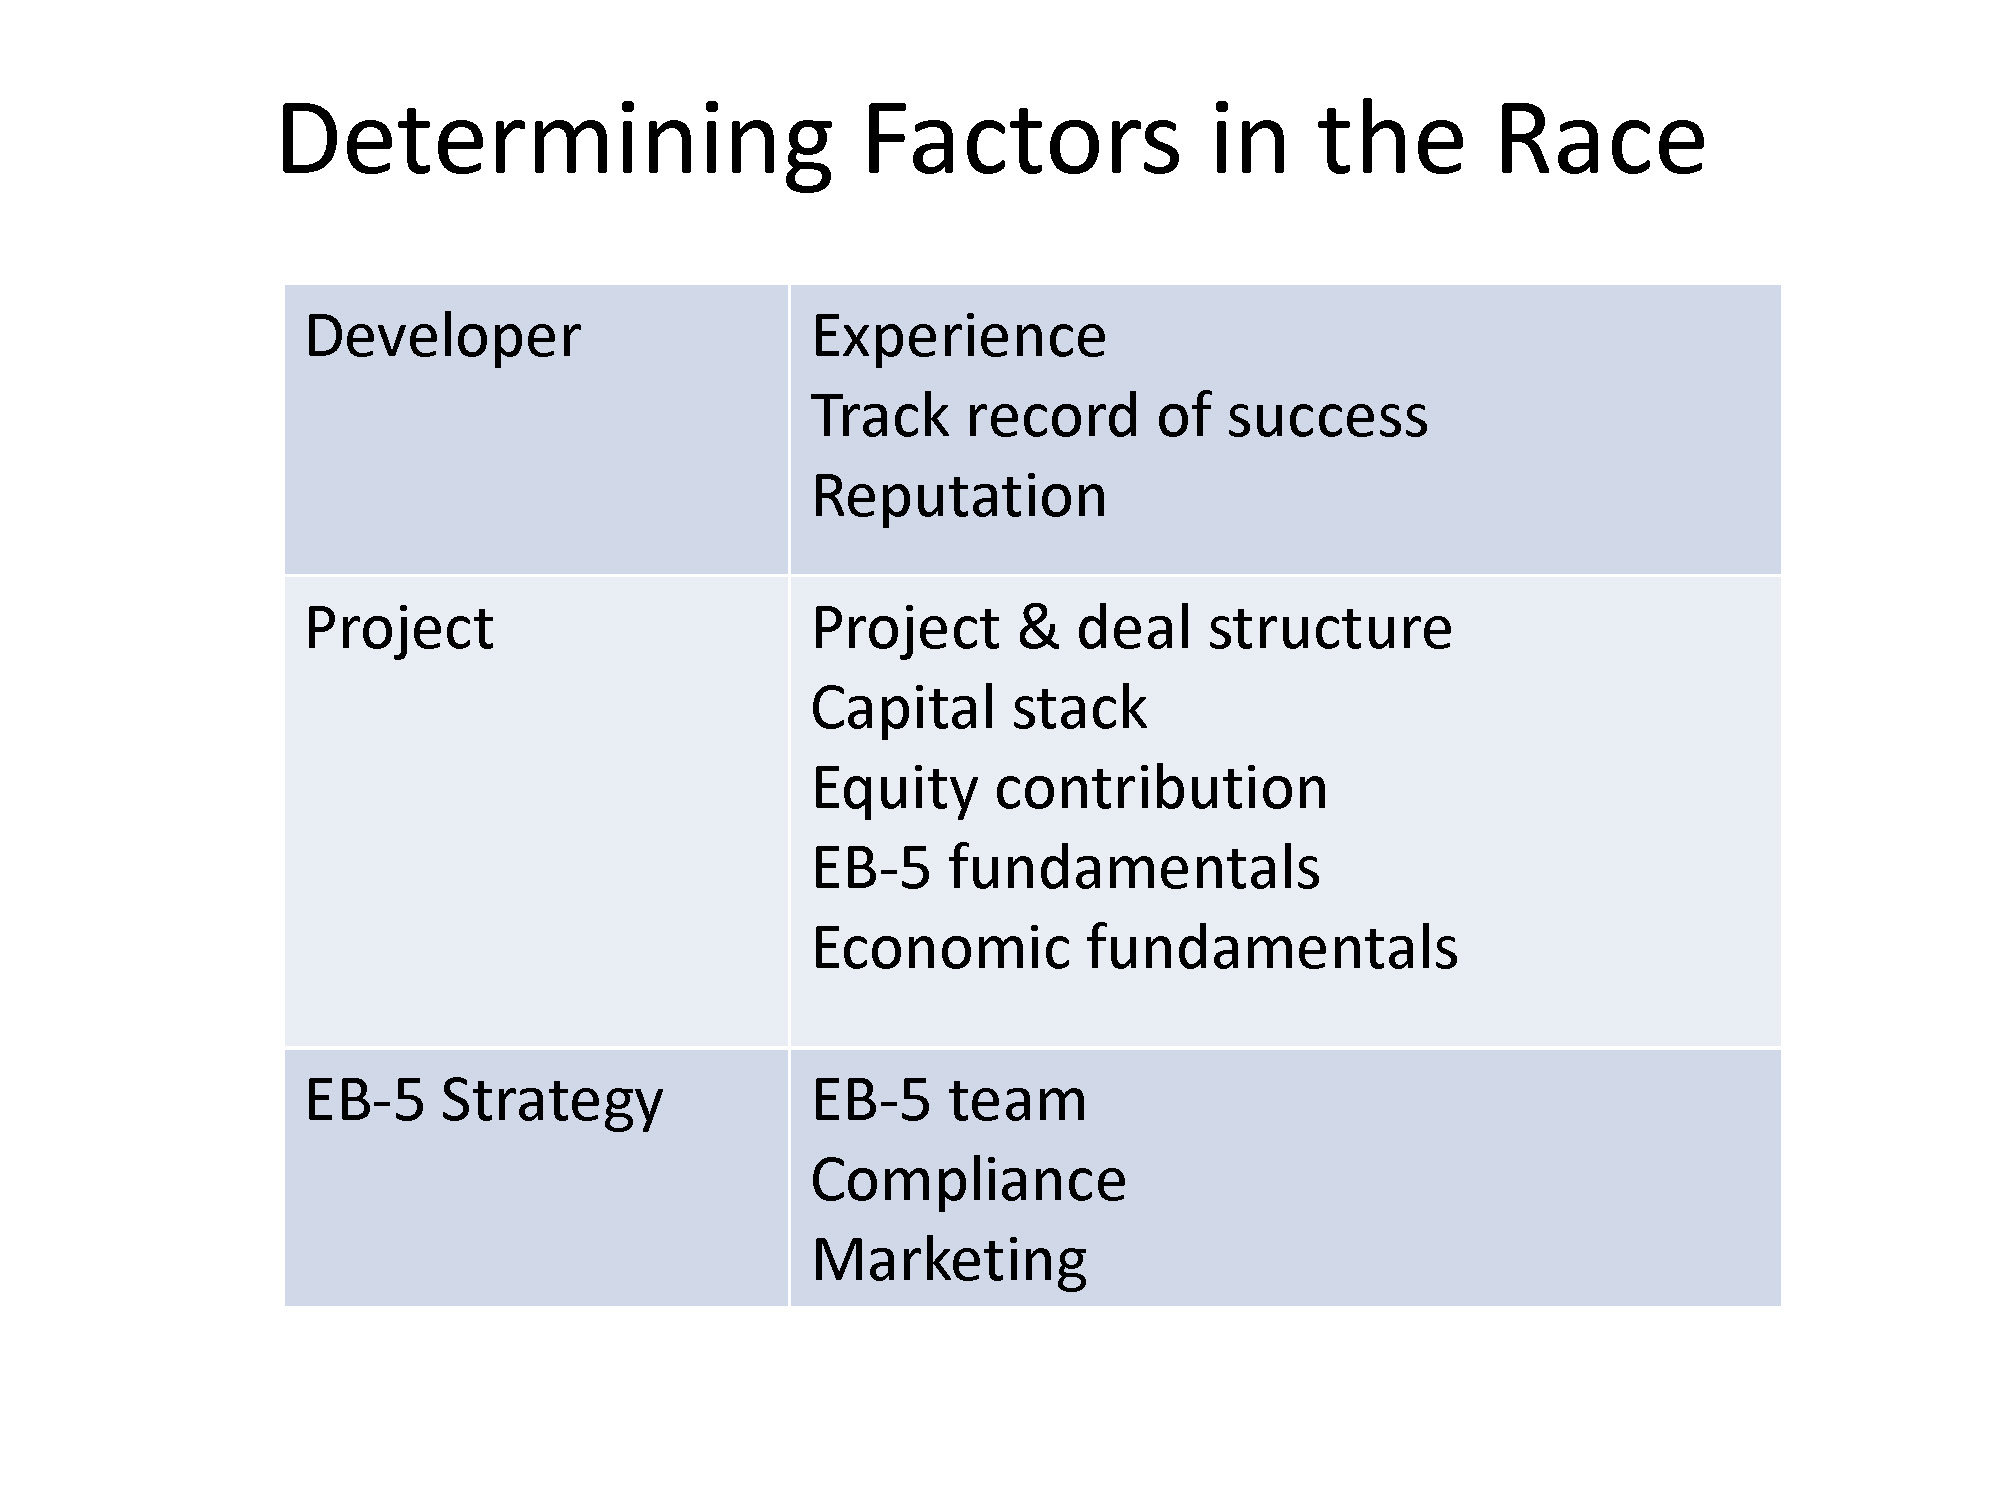 2-Determining Factors in the Race